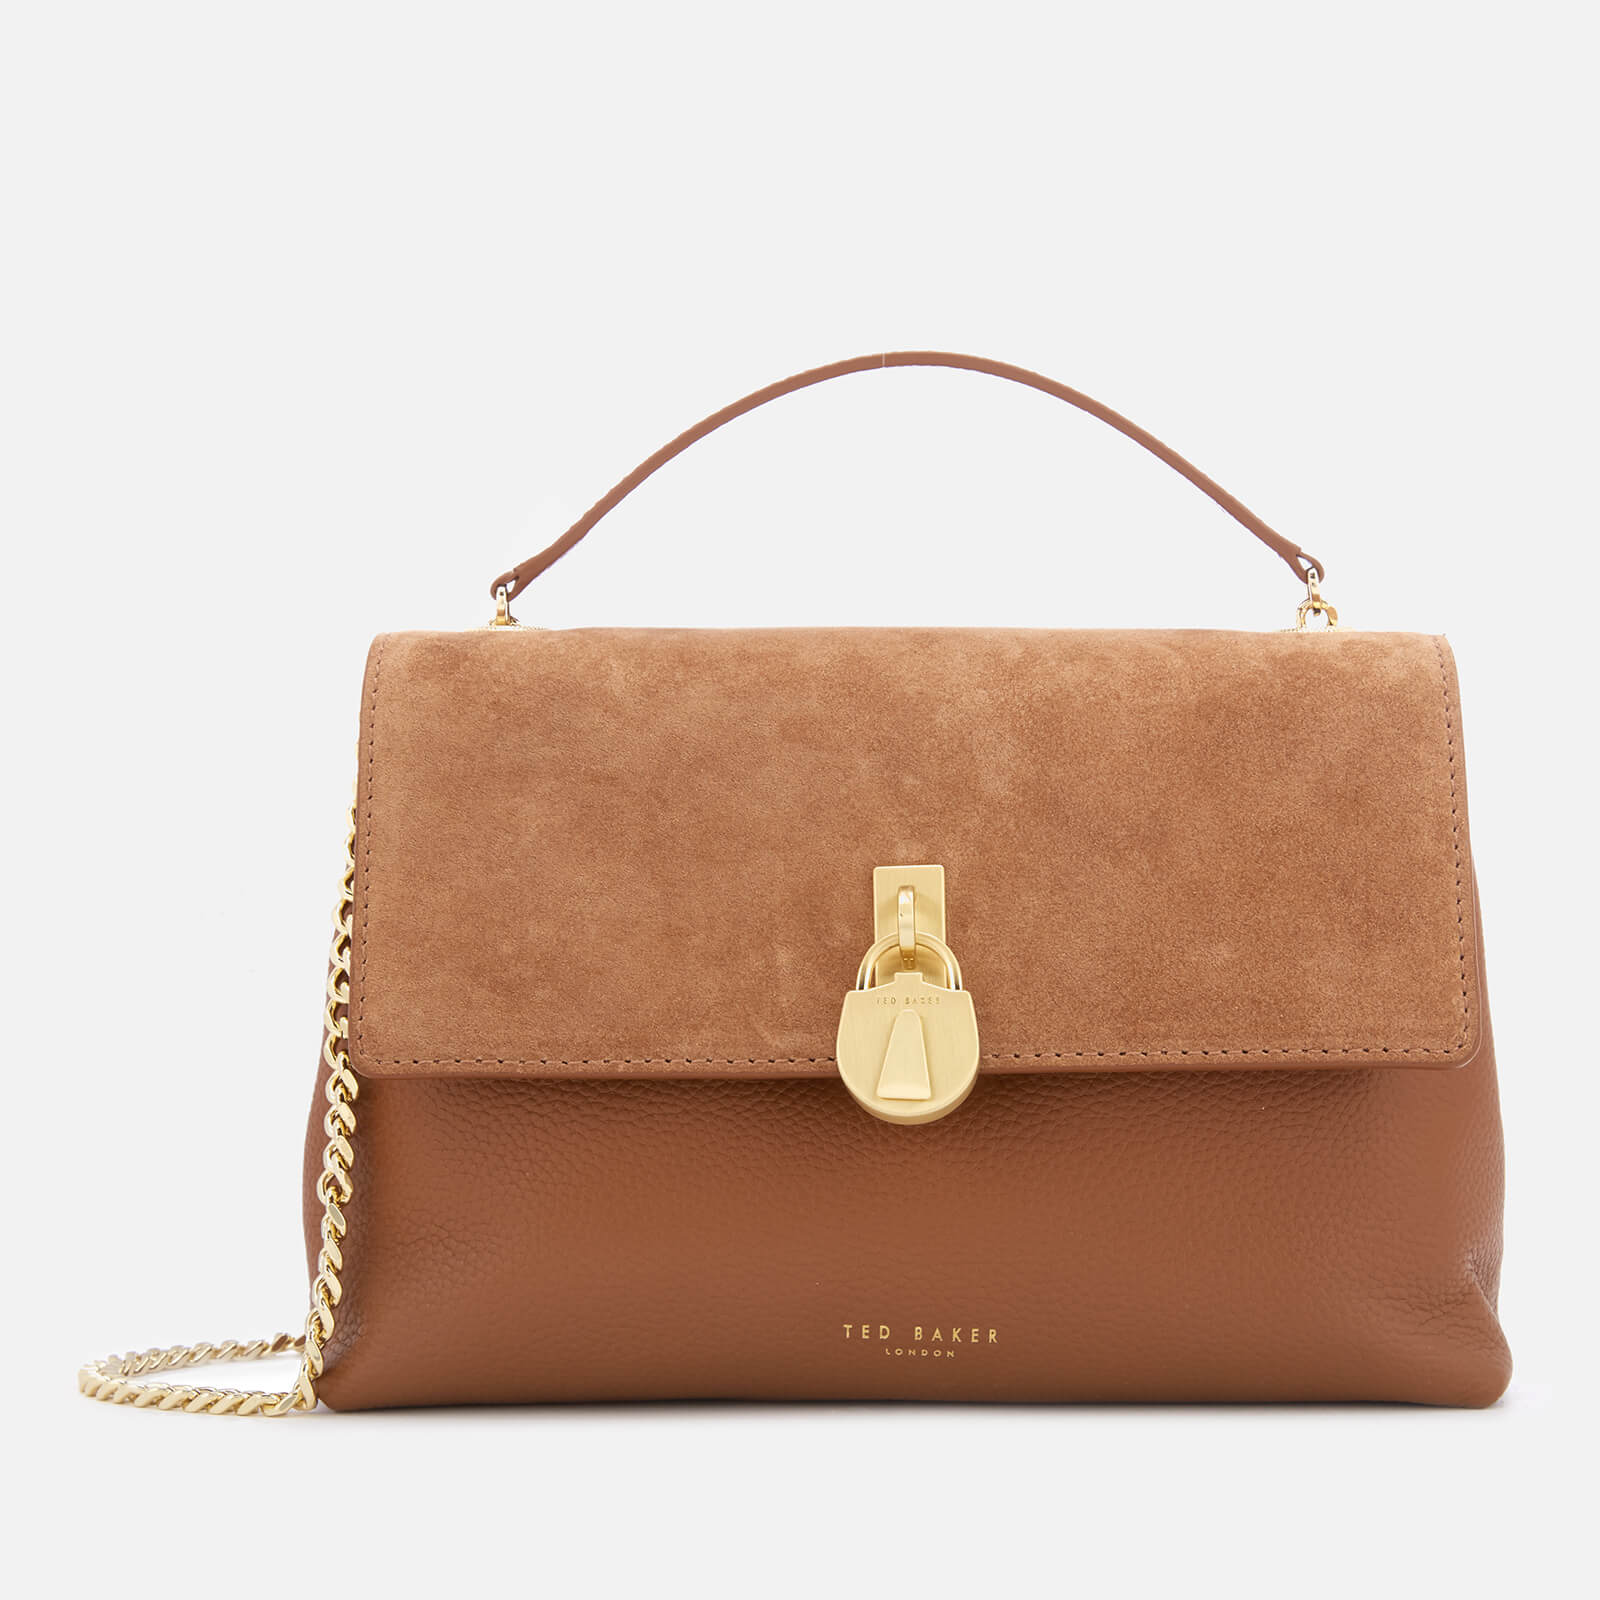 Ted Baker Women's Helena Suede Padlock Cross Body Bag - Tan 原價159英鎊 優惠價112